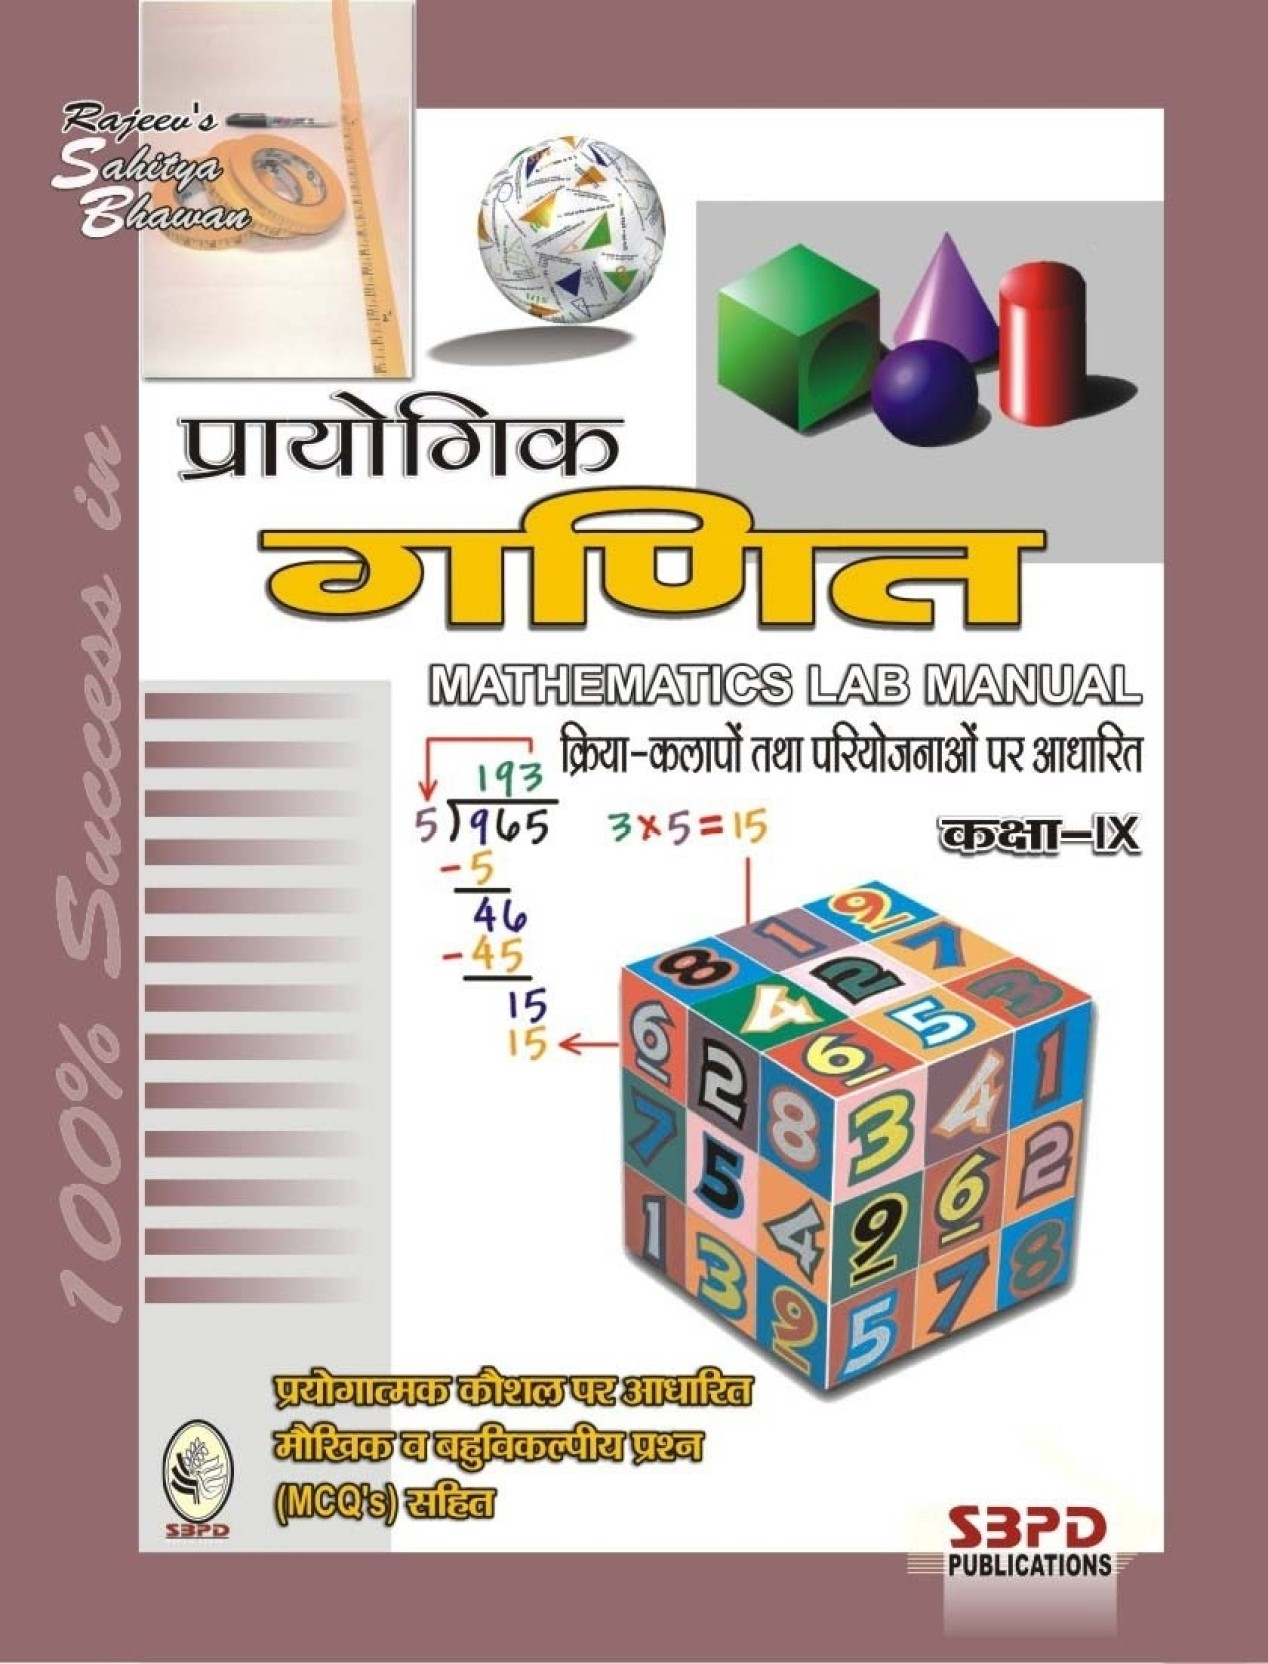 Mathematics Lab Manual : For Class 9th. ADD TO CART